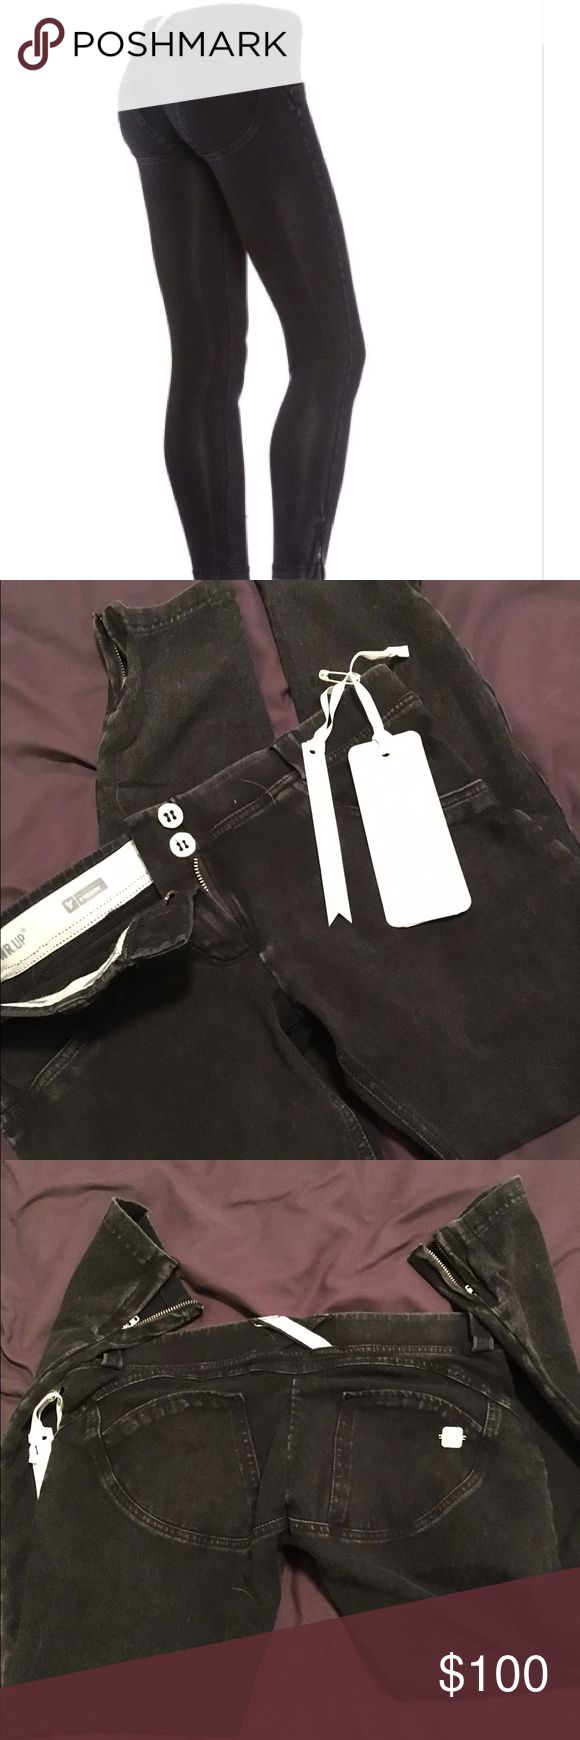 Freddy 7/8 black skinny jean Sz M These were way too small for me. I am a 4/6 with a muscular bottom and definitely these run small. They fit more like a 2/4 in my opinion. If you need more details please visit the Freddy store Freddy Jeans Ankle & Cropped